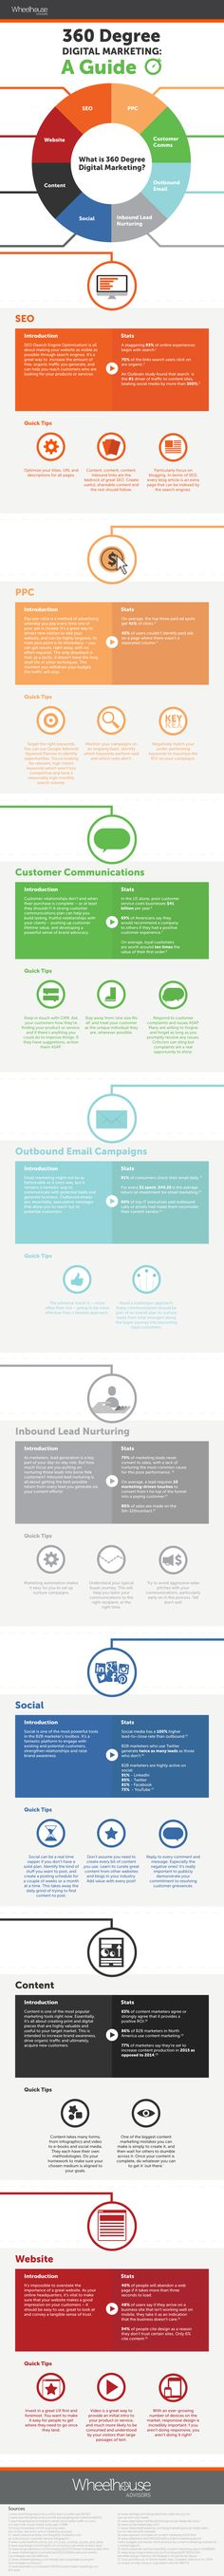 What Is 360 Degree Digital Marketing? #infographic